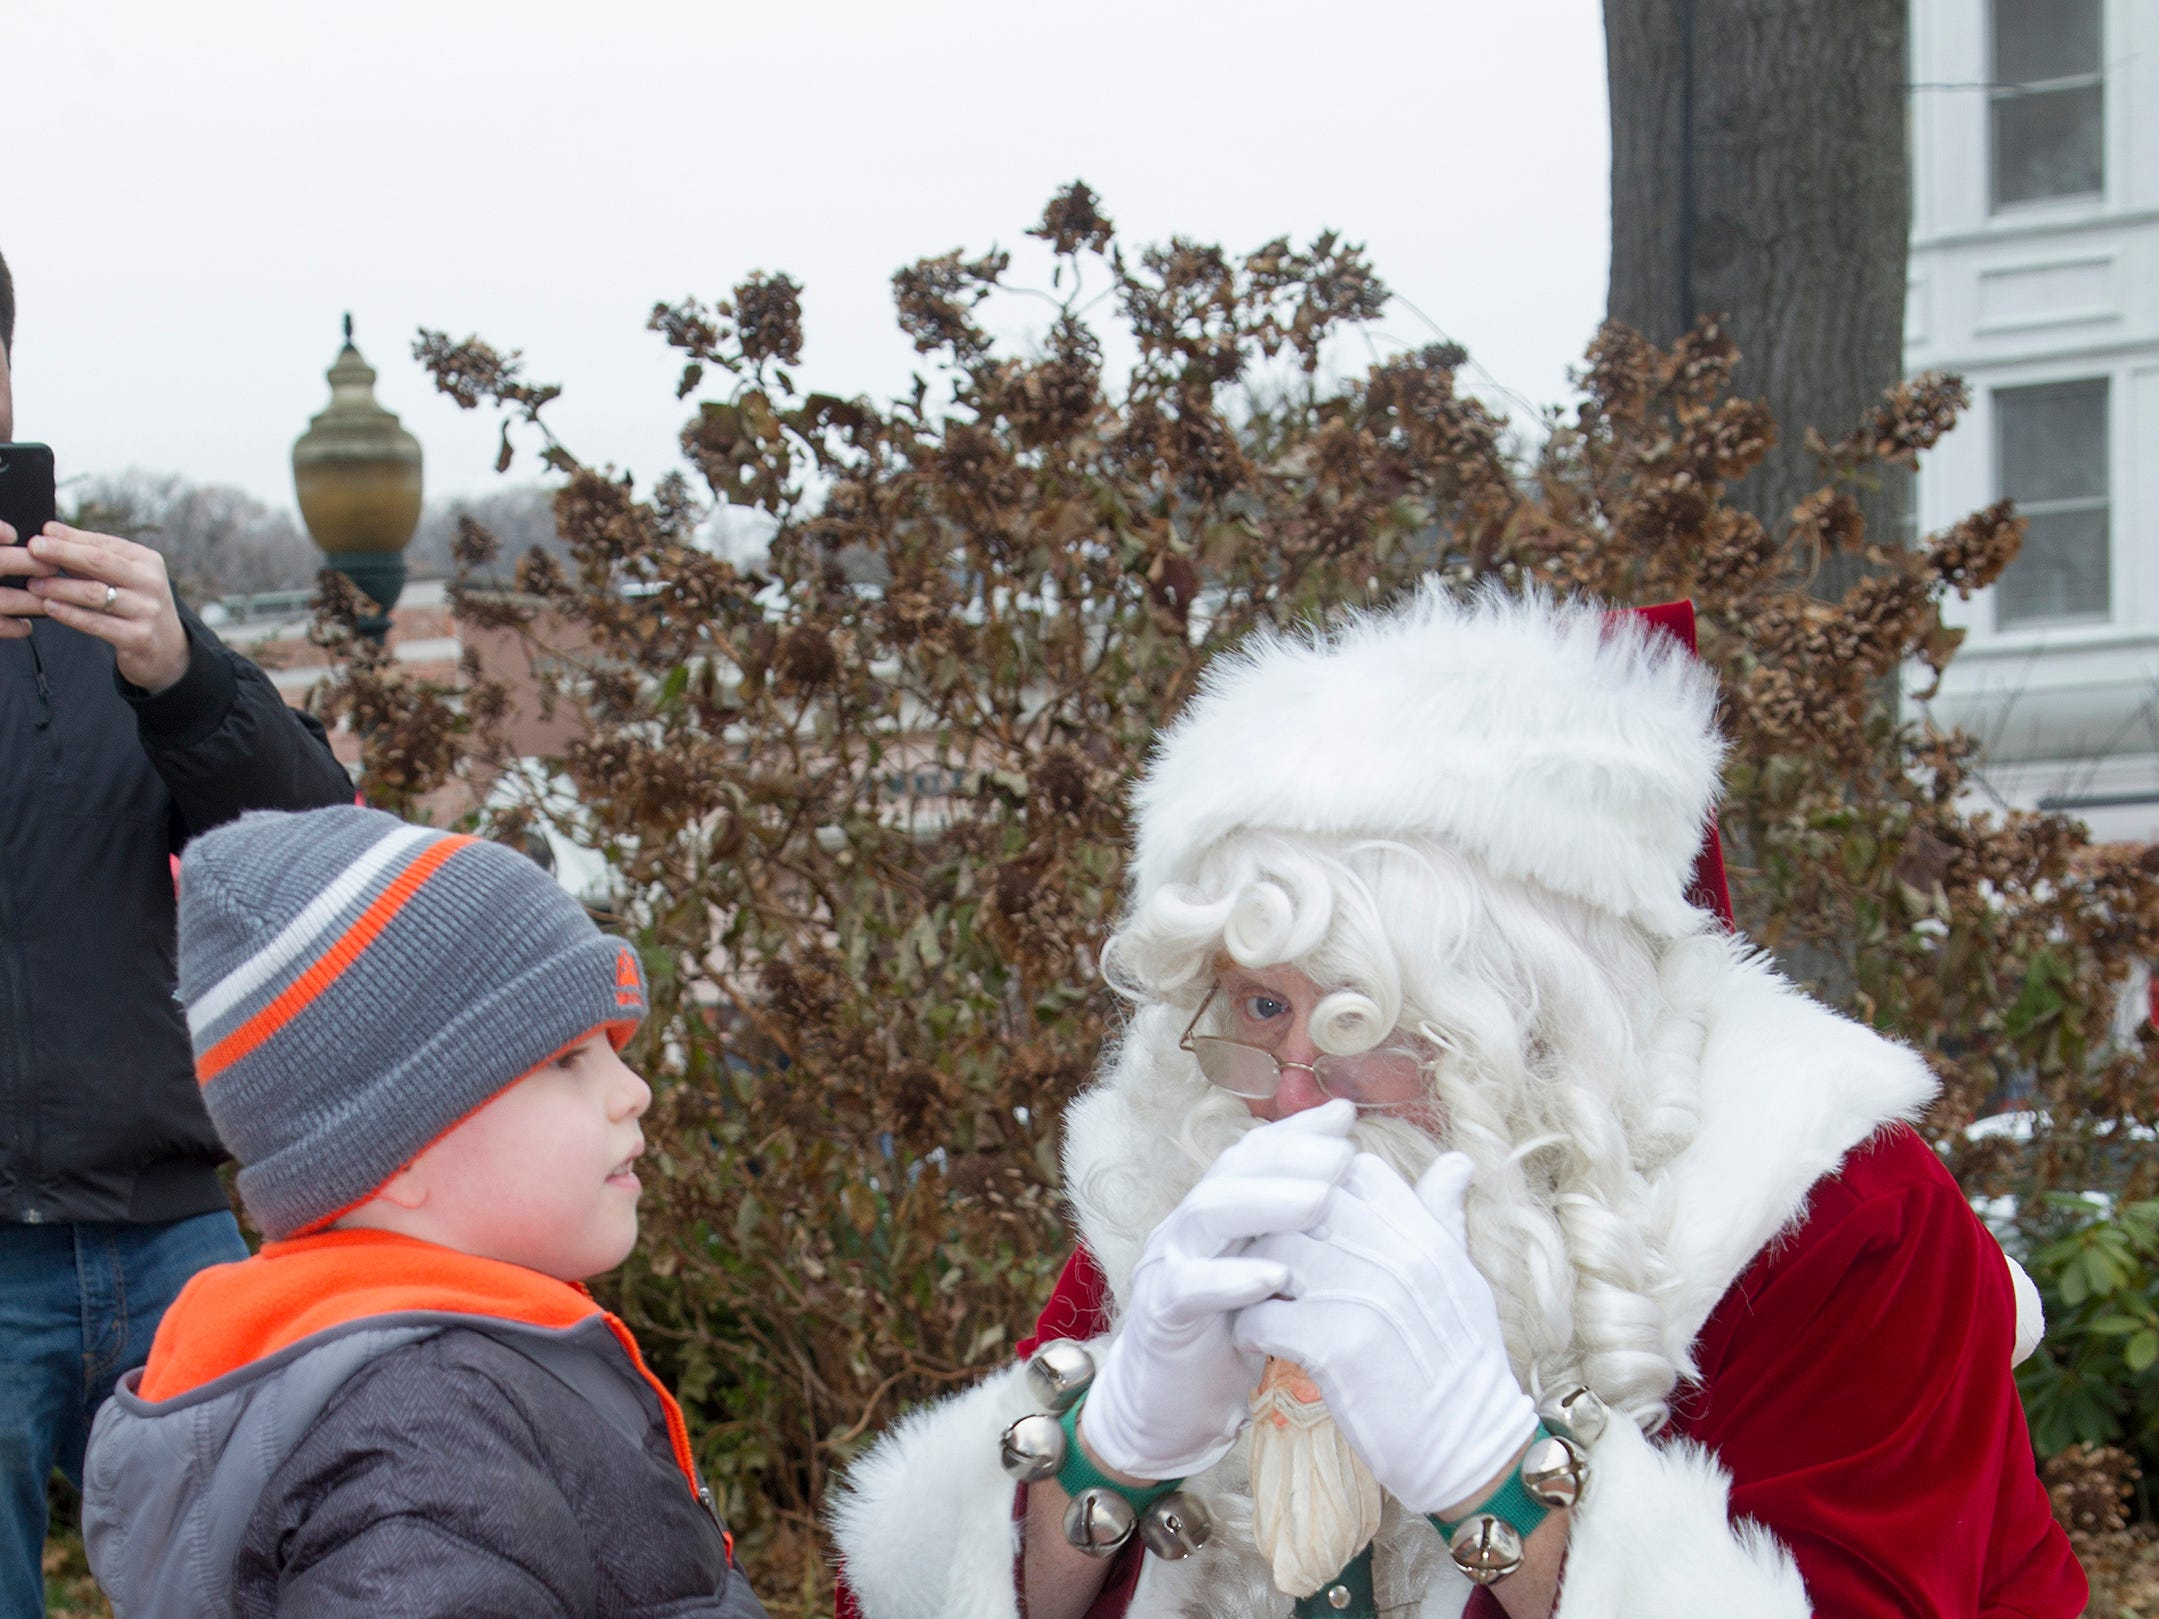 Chris and Santa. The Ridgewood Guild sponsors Winter Fest at Van Neste Park in Ridgewood. 11/24/2018